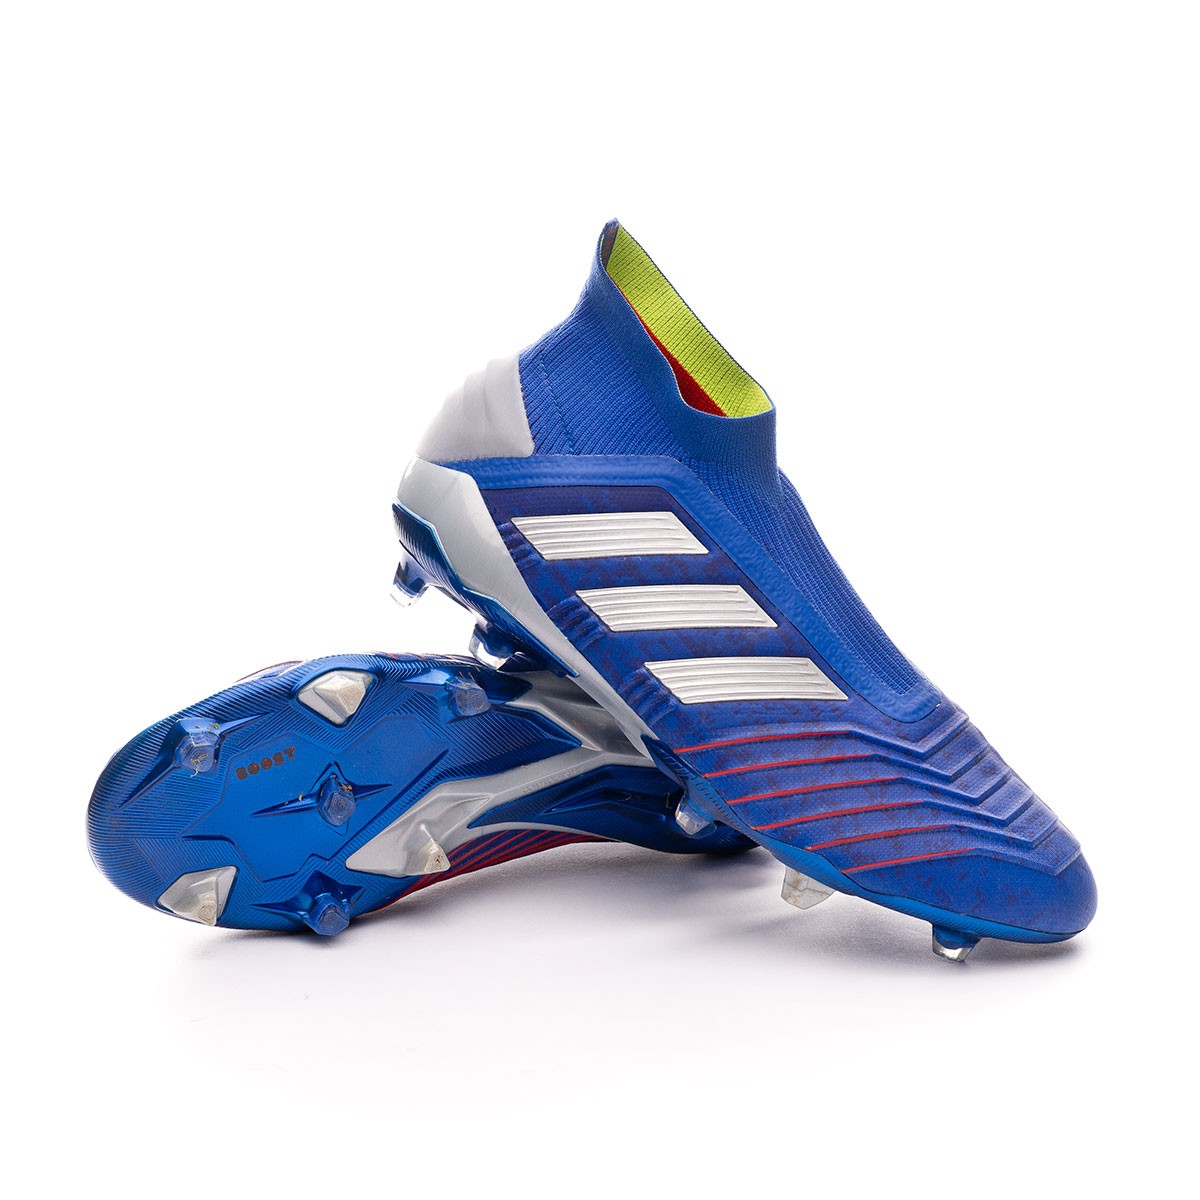 Tanzania Vientre taiko idioma  Football Boots adidas Predator 19+ FG Bold blue-Silver metallic-Active red  - Football store Fútbol Emotion